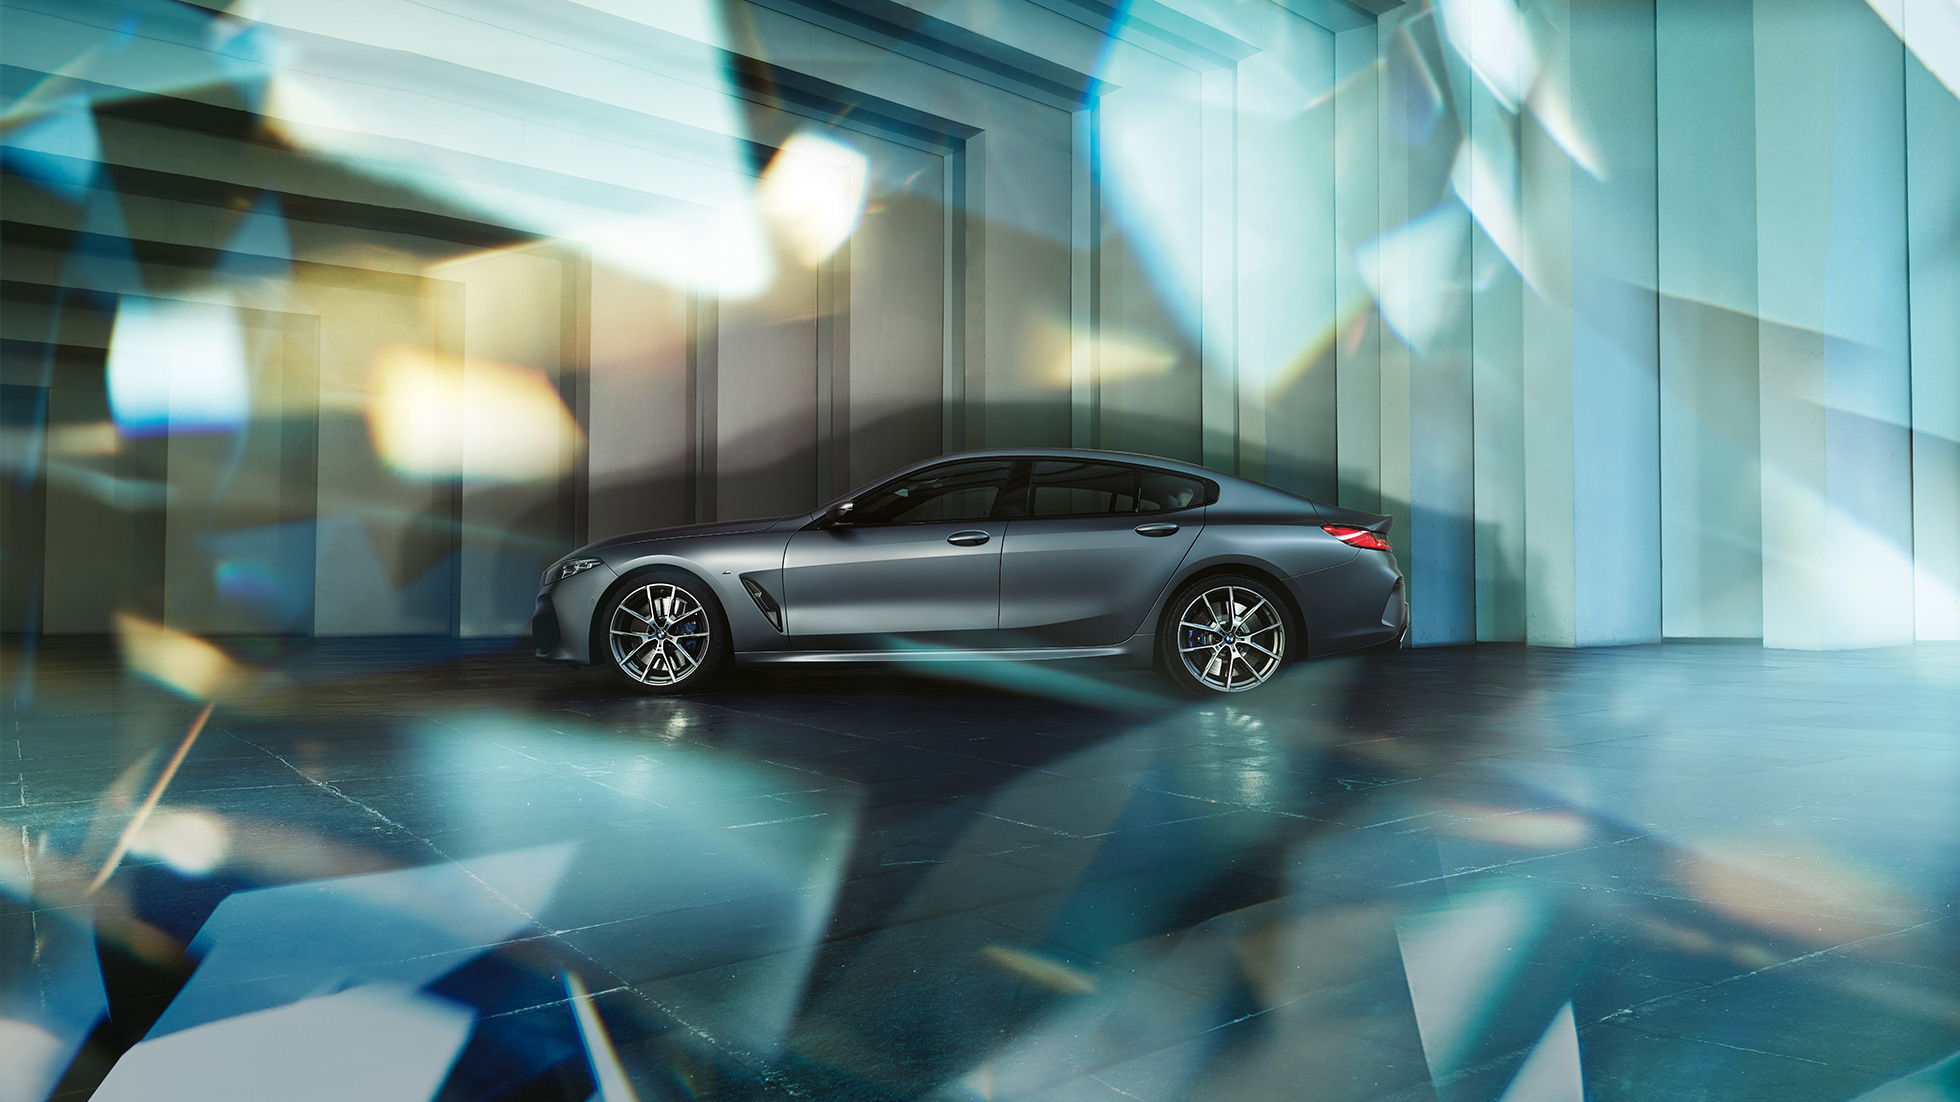 Coupé silhouette BMW M850i xDrive Gran Coupé G16 2019 BMW Individual Frozen Bluestone metallic side view